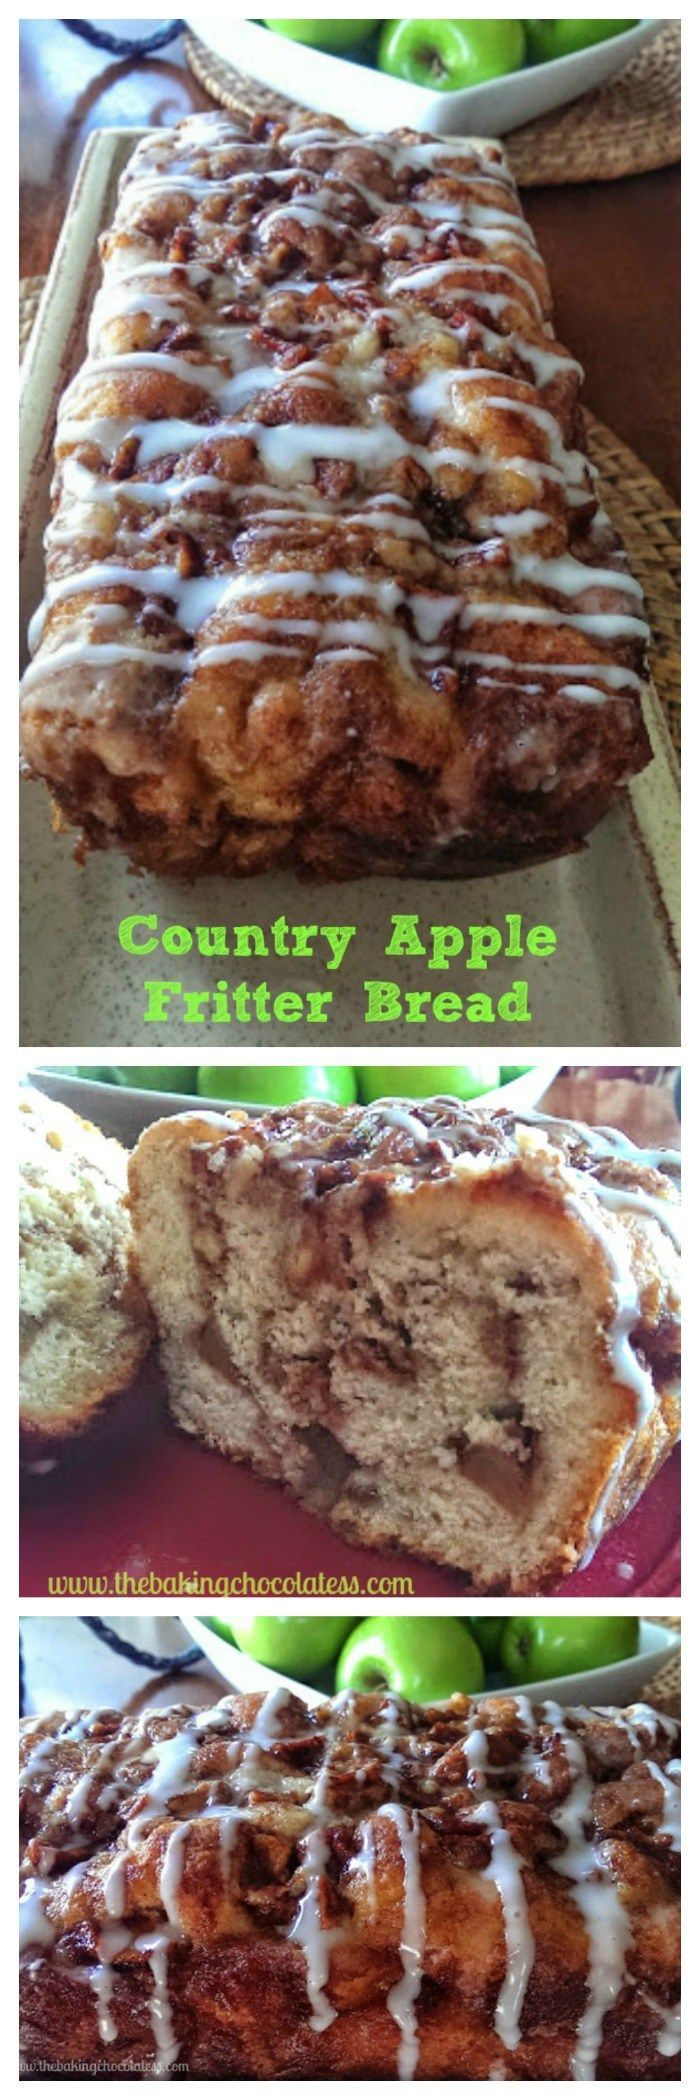 Awesome Country Apple Fritter Bread! Tried it, loved it! To use as french toast make a day a head or so cut and let dry out a bit.